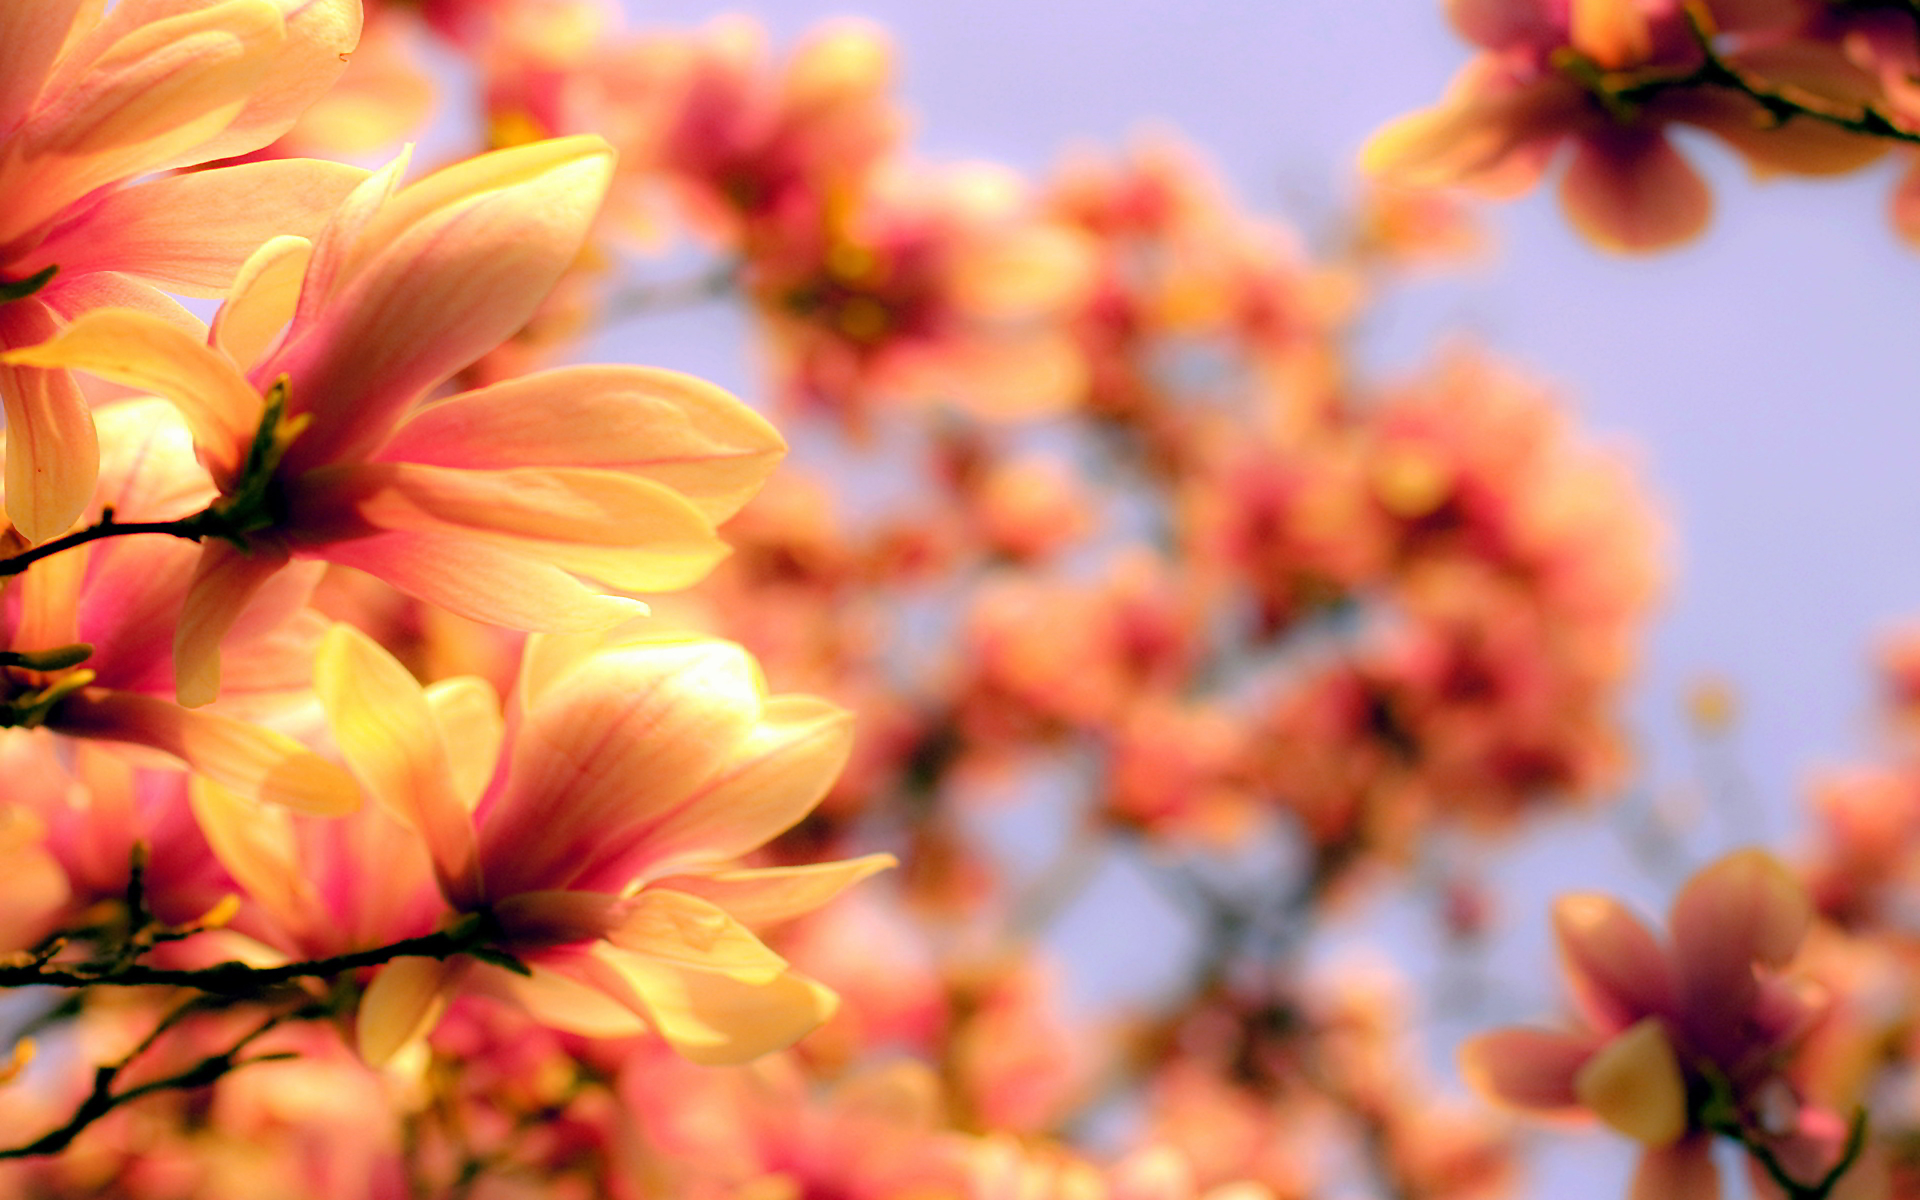 flowers wallpaper blurred orange